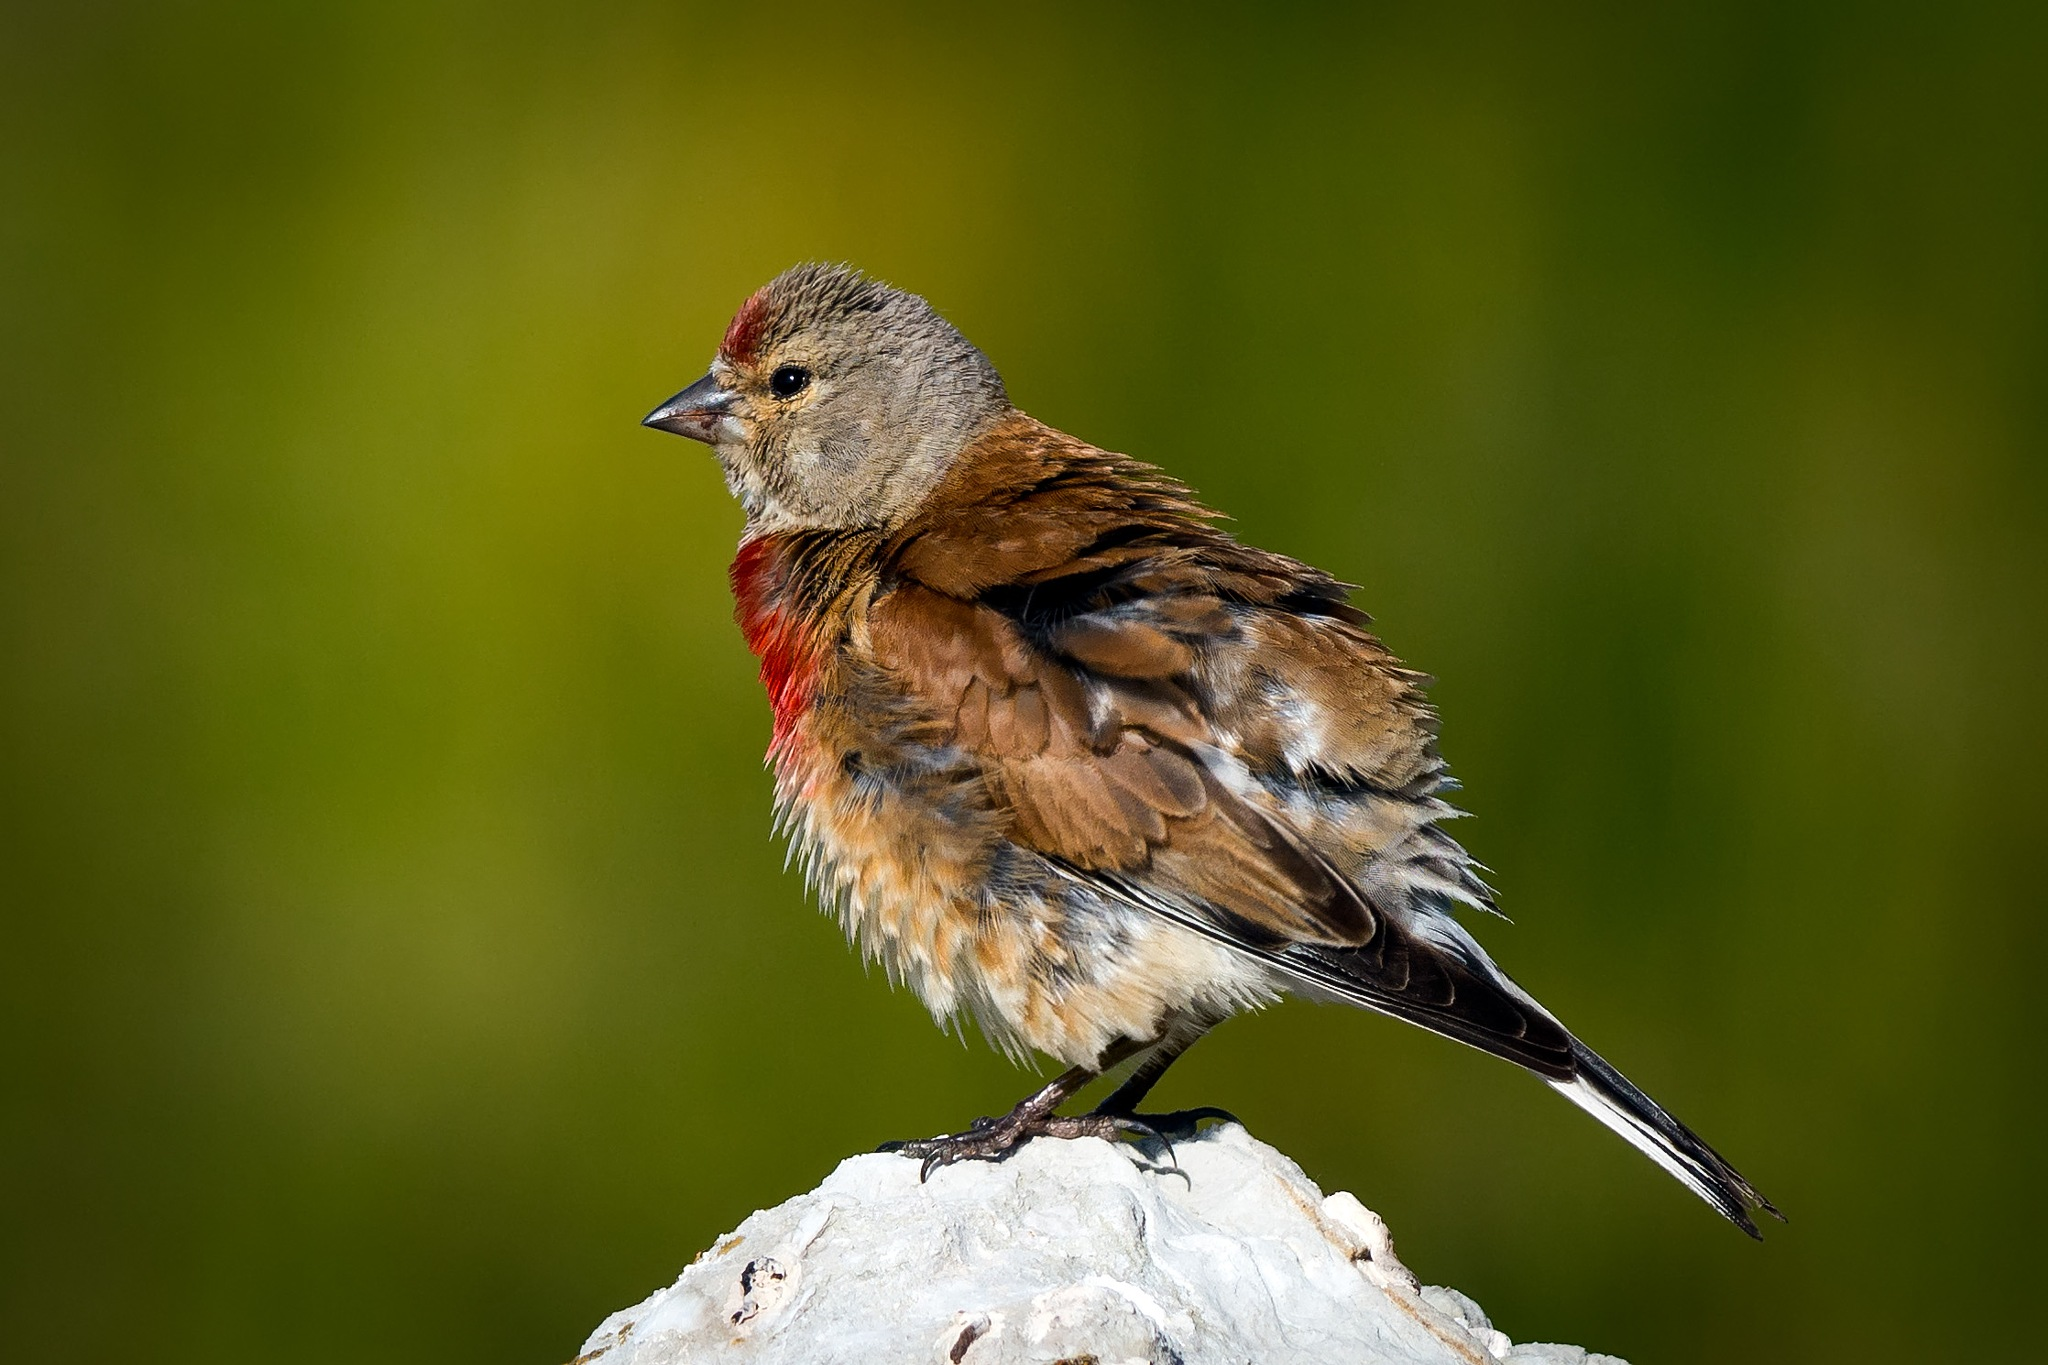 Common linnet by Matteo Cargasacchi